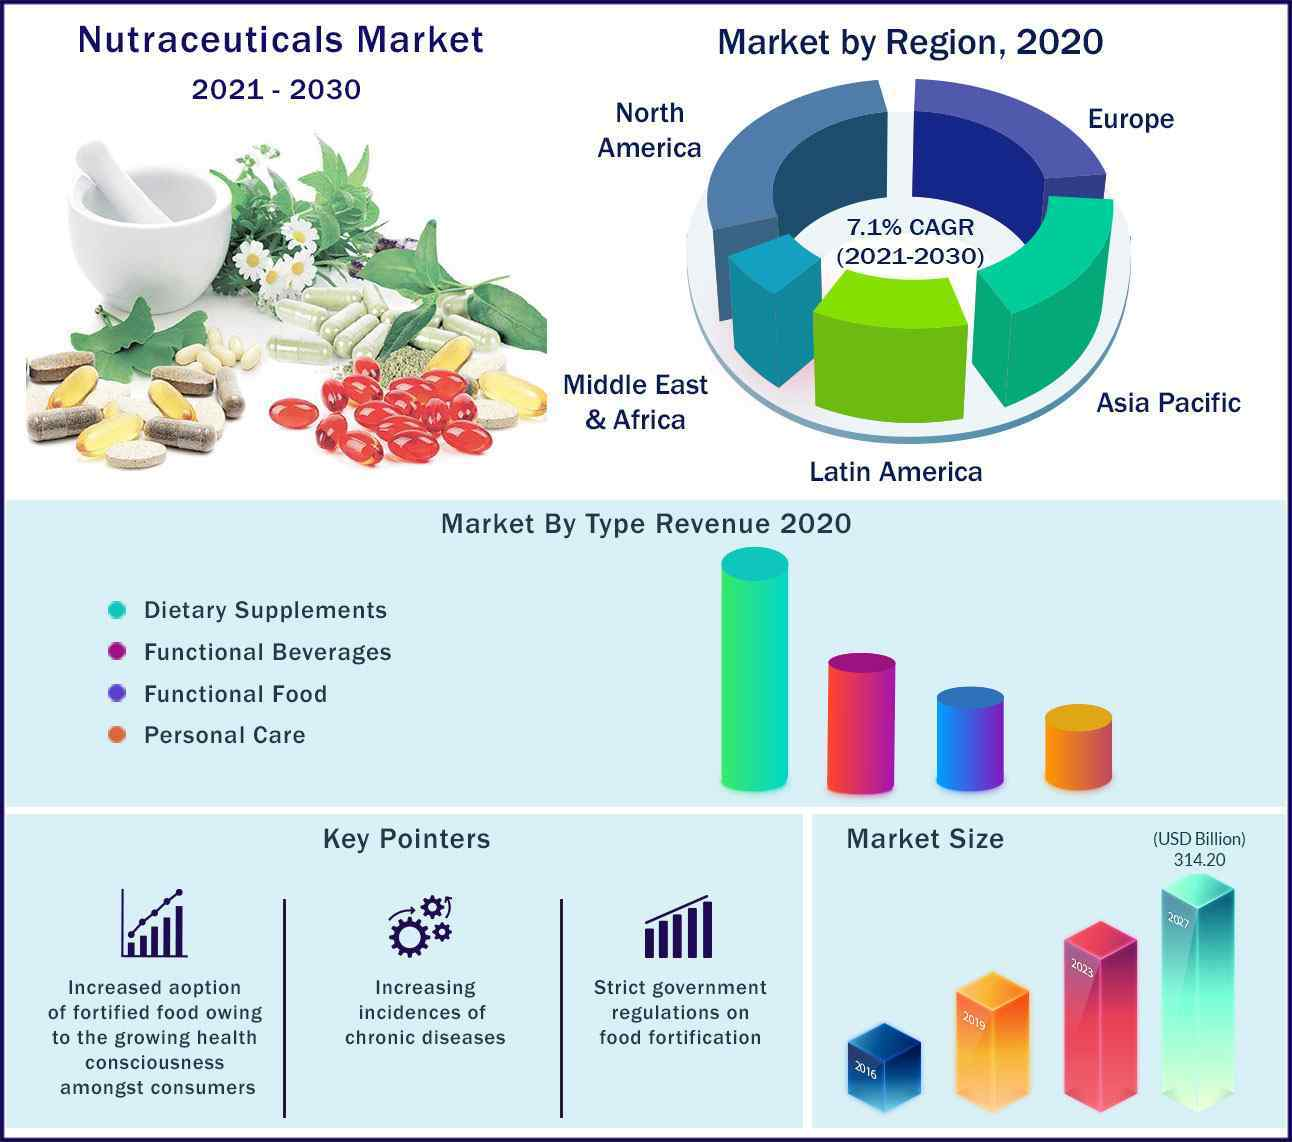 Global Nutraceuticals Market 2021 to 2030